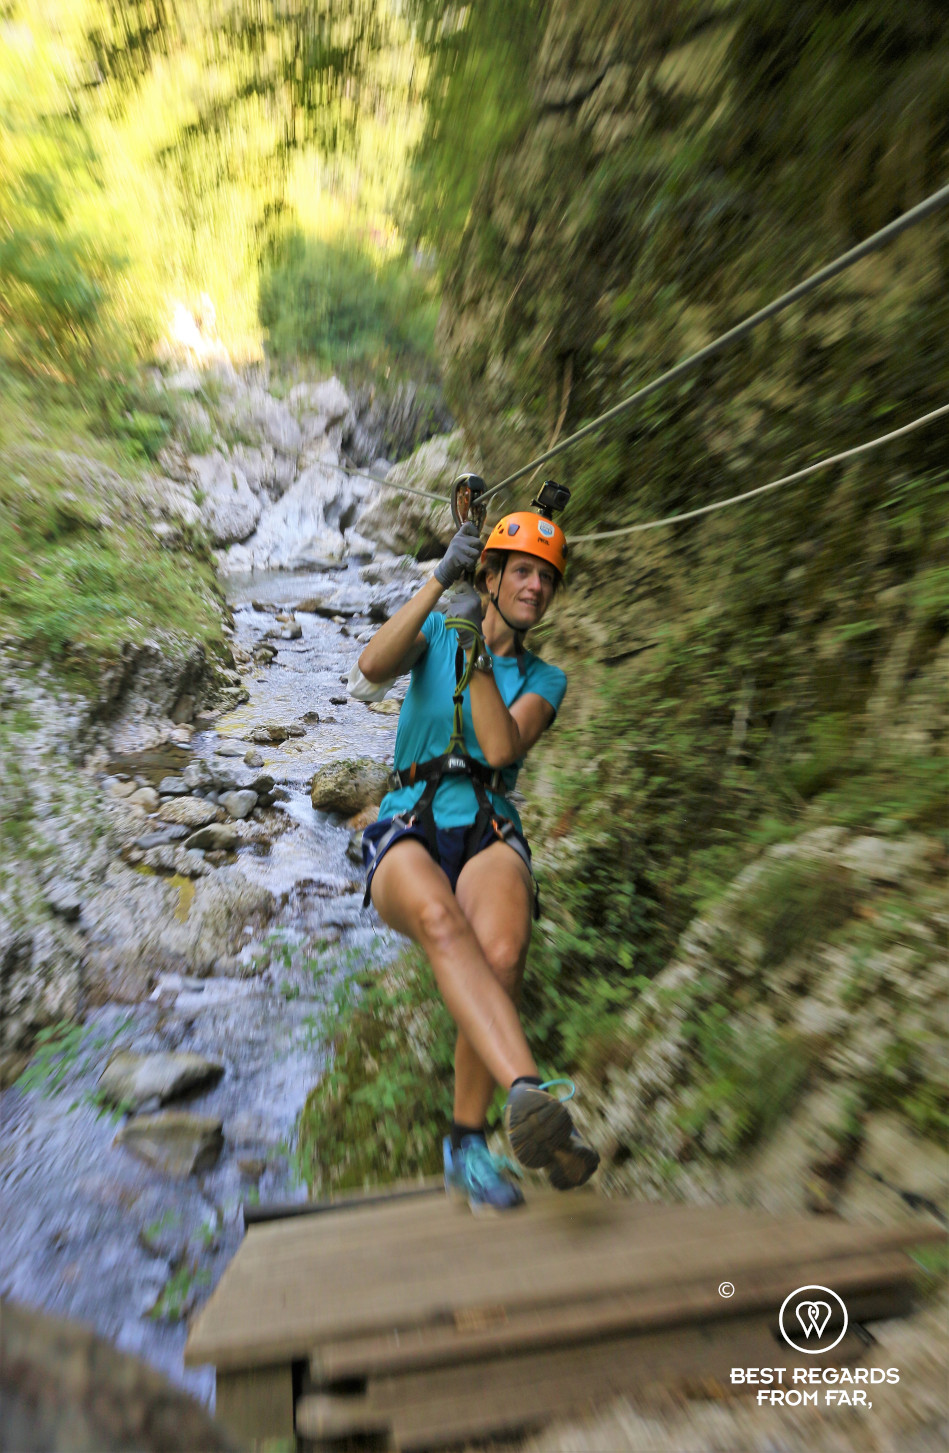 Zip lining above the Lima Canyon by Bagni di Lucca, Italy.